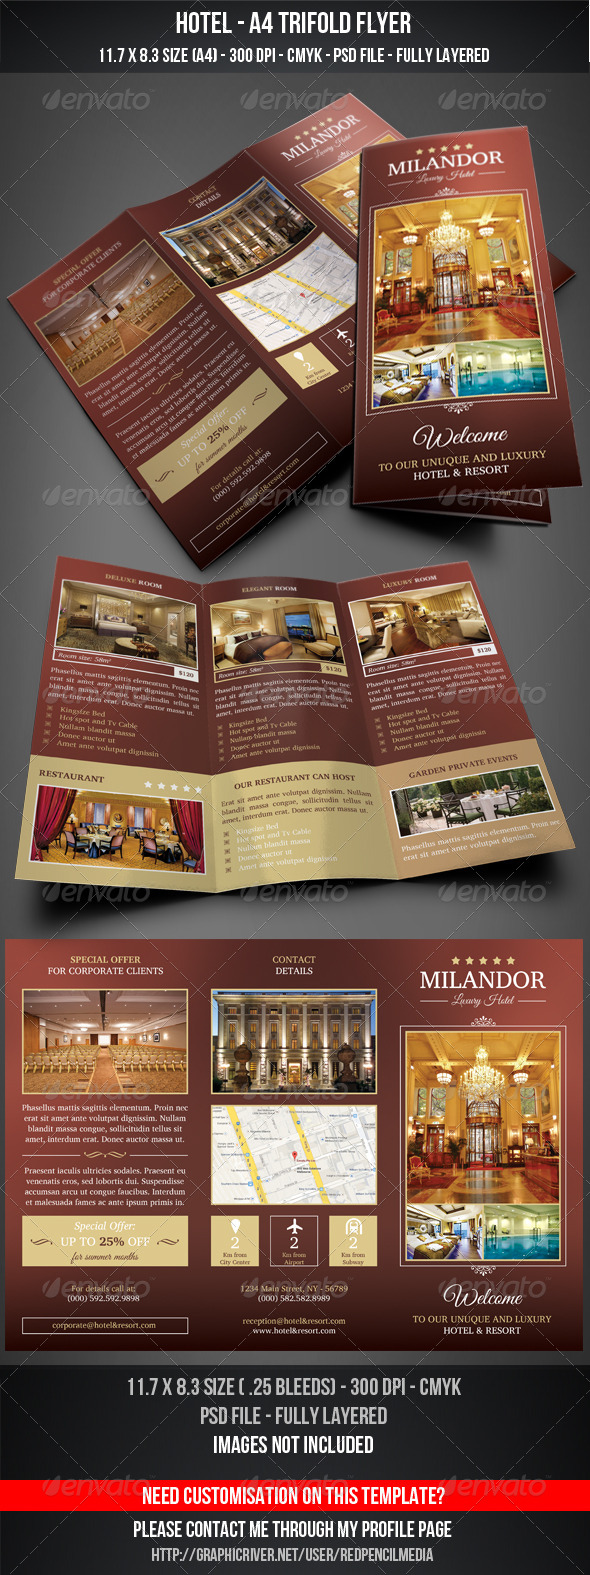 GraphicRiver HOTEL A4 TRIFOLD FLYER 7489986